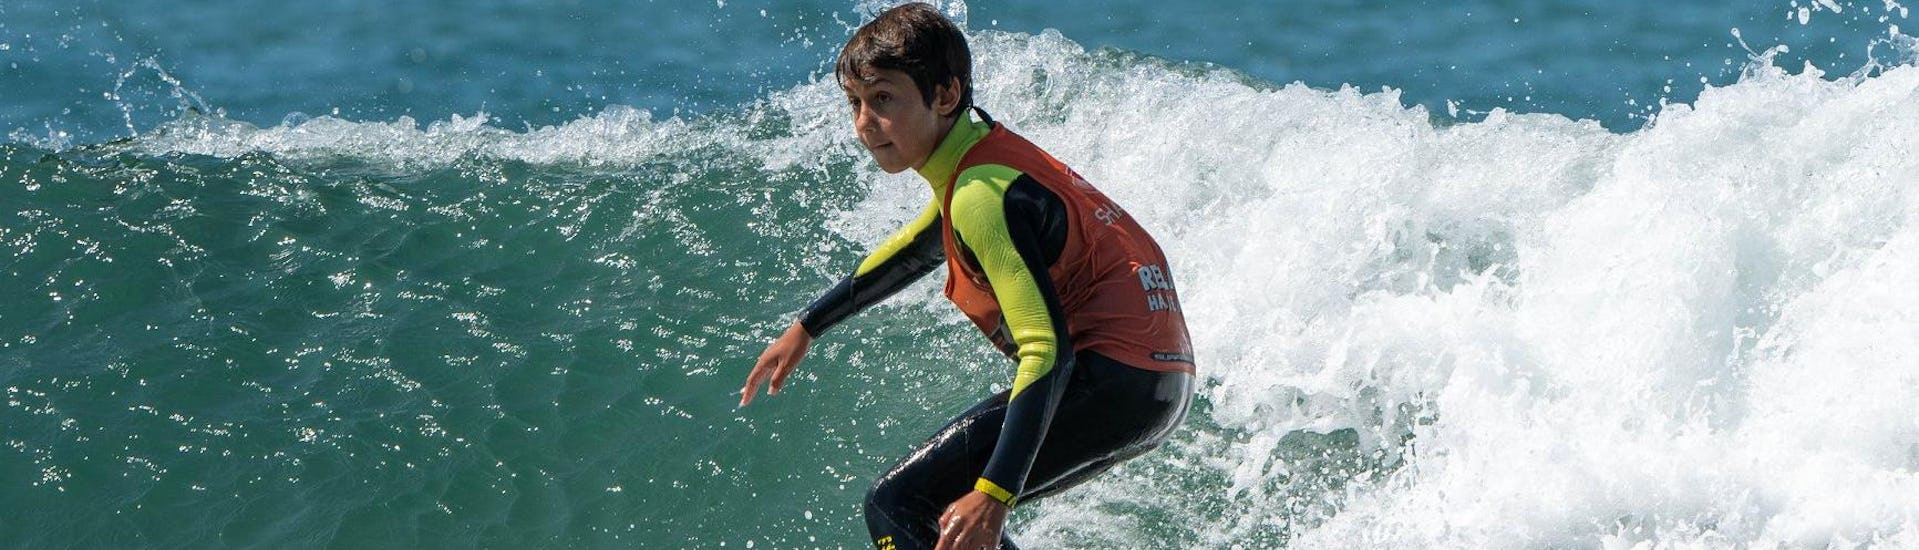 A boy is riding the first wave during a surf lesson organised by Surfaventura on Matosinhos Beach.